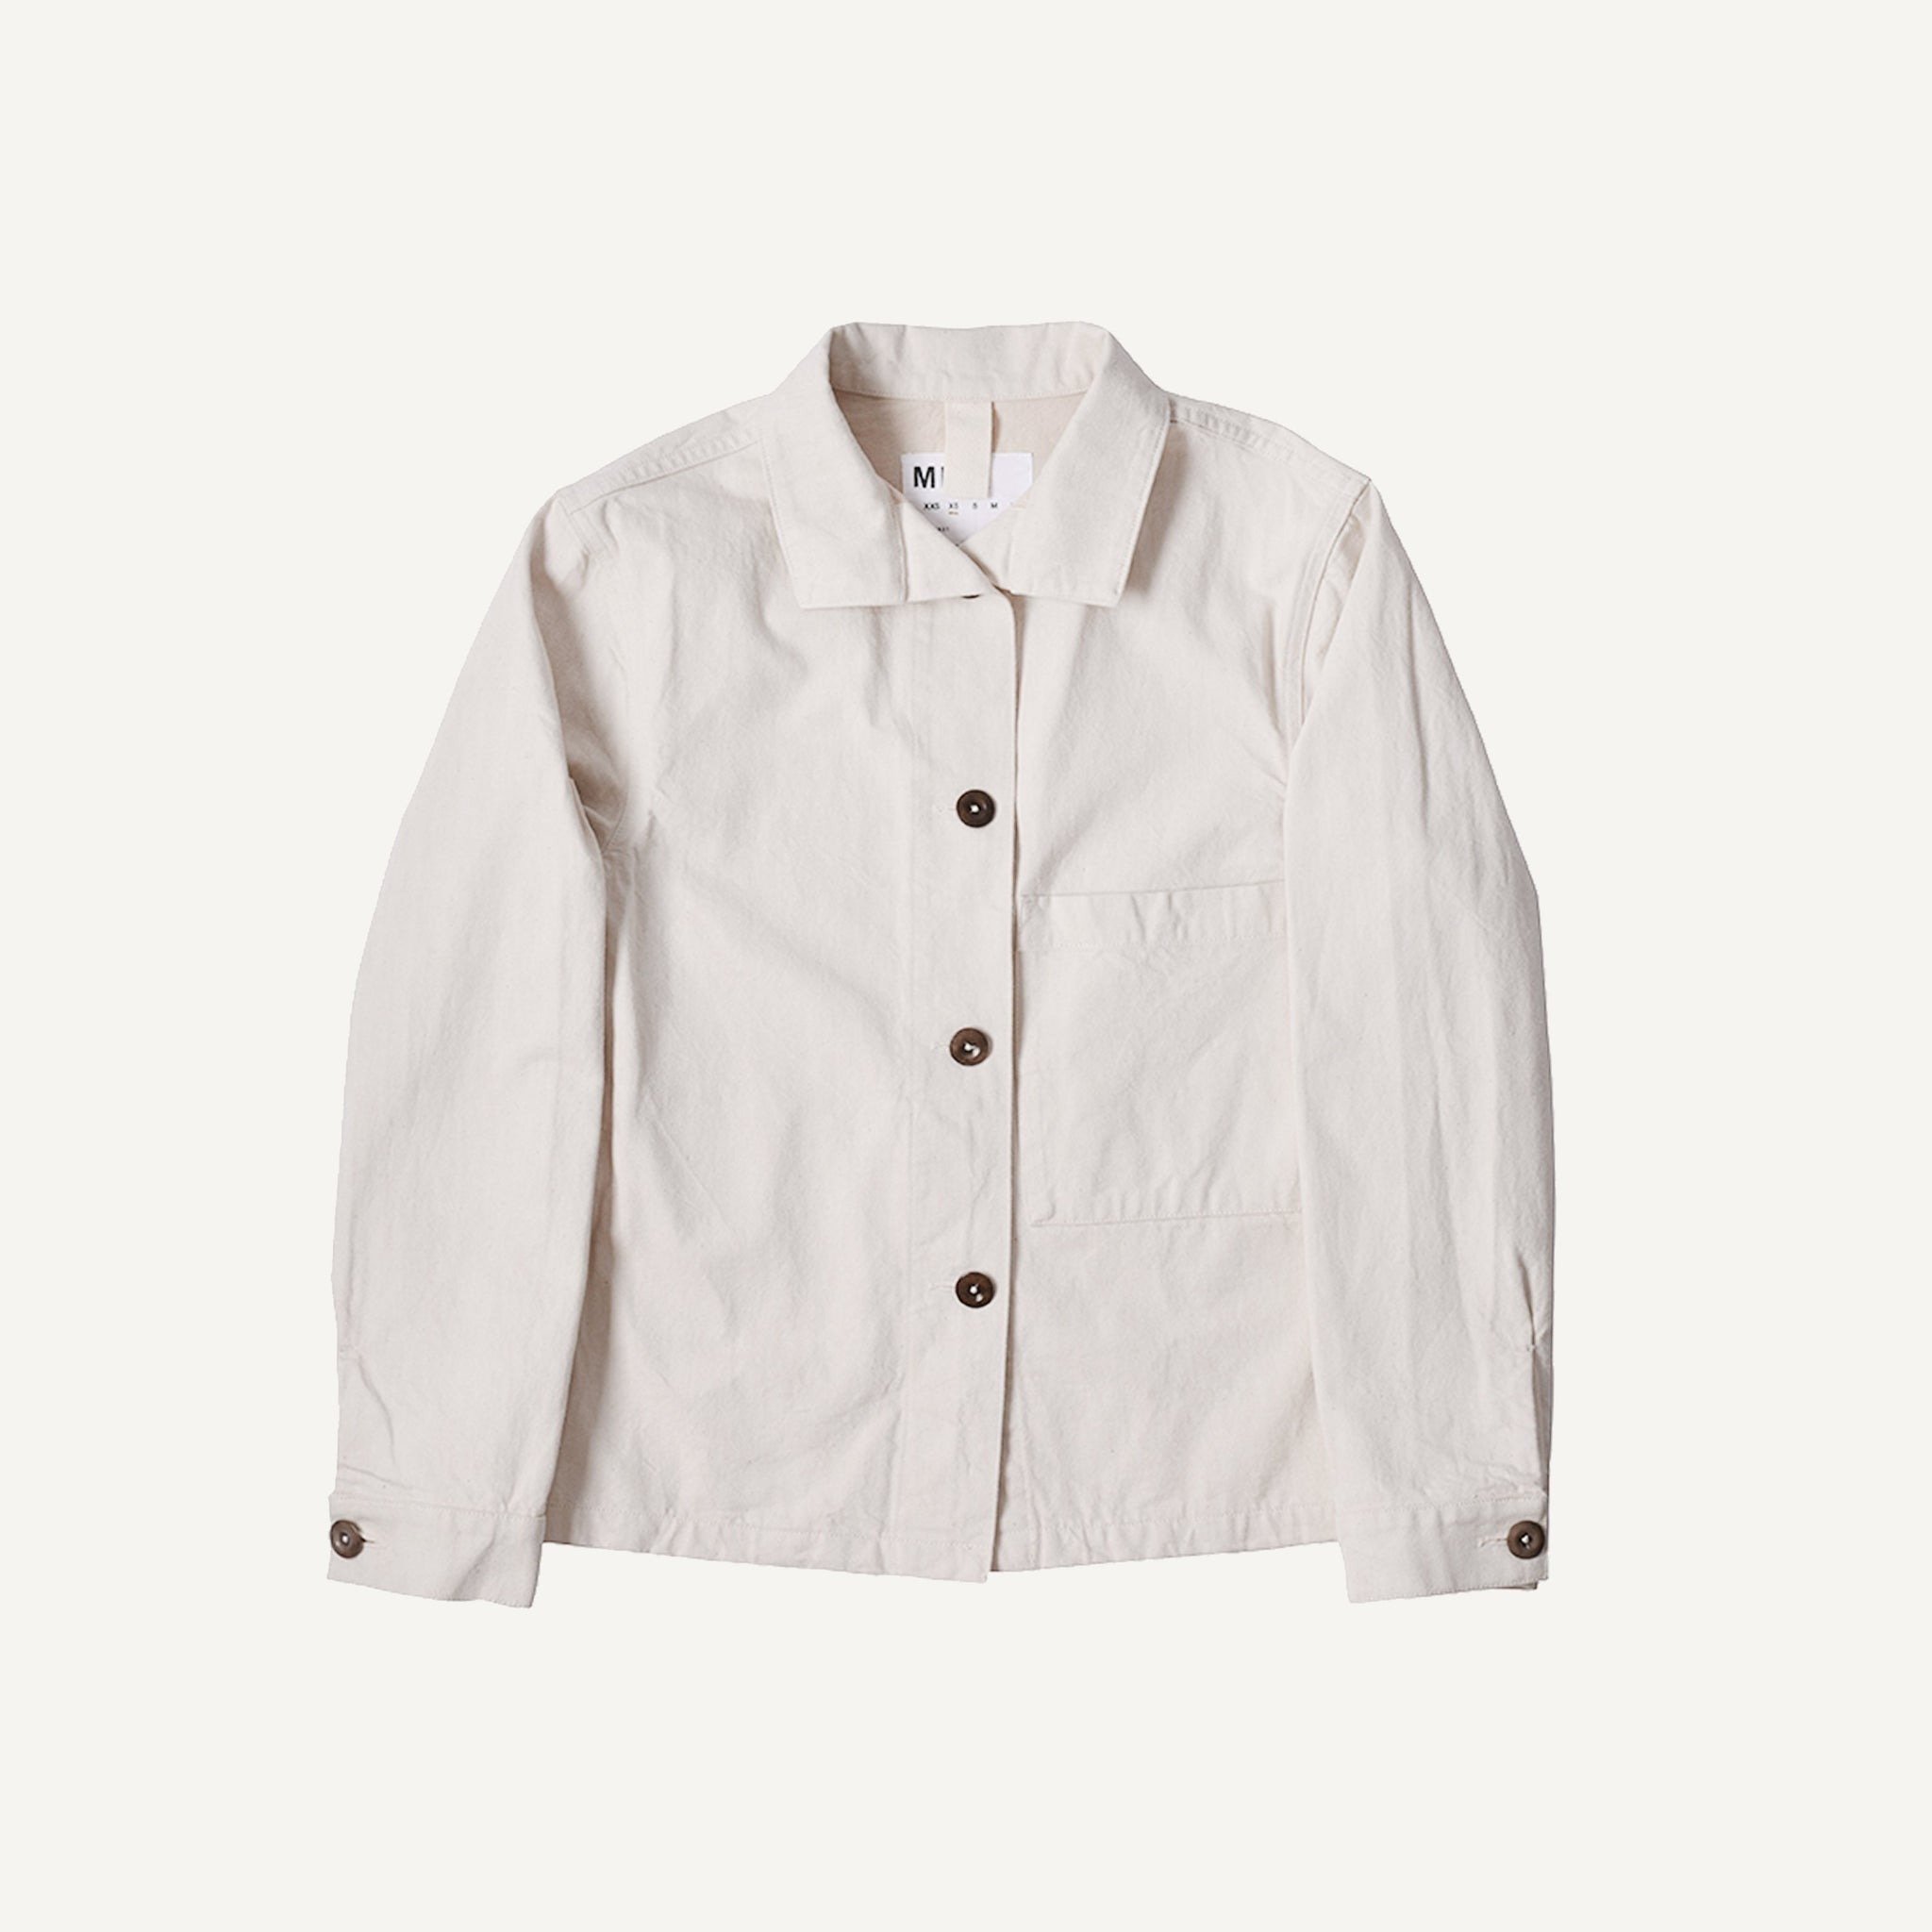 MHL WOMEN'S STAND COLLAR JACKET